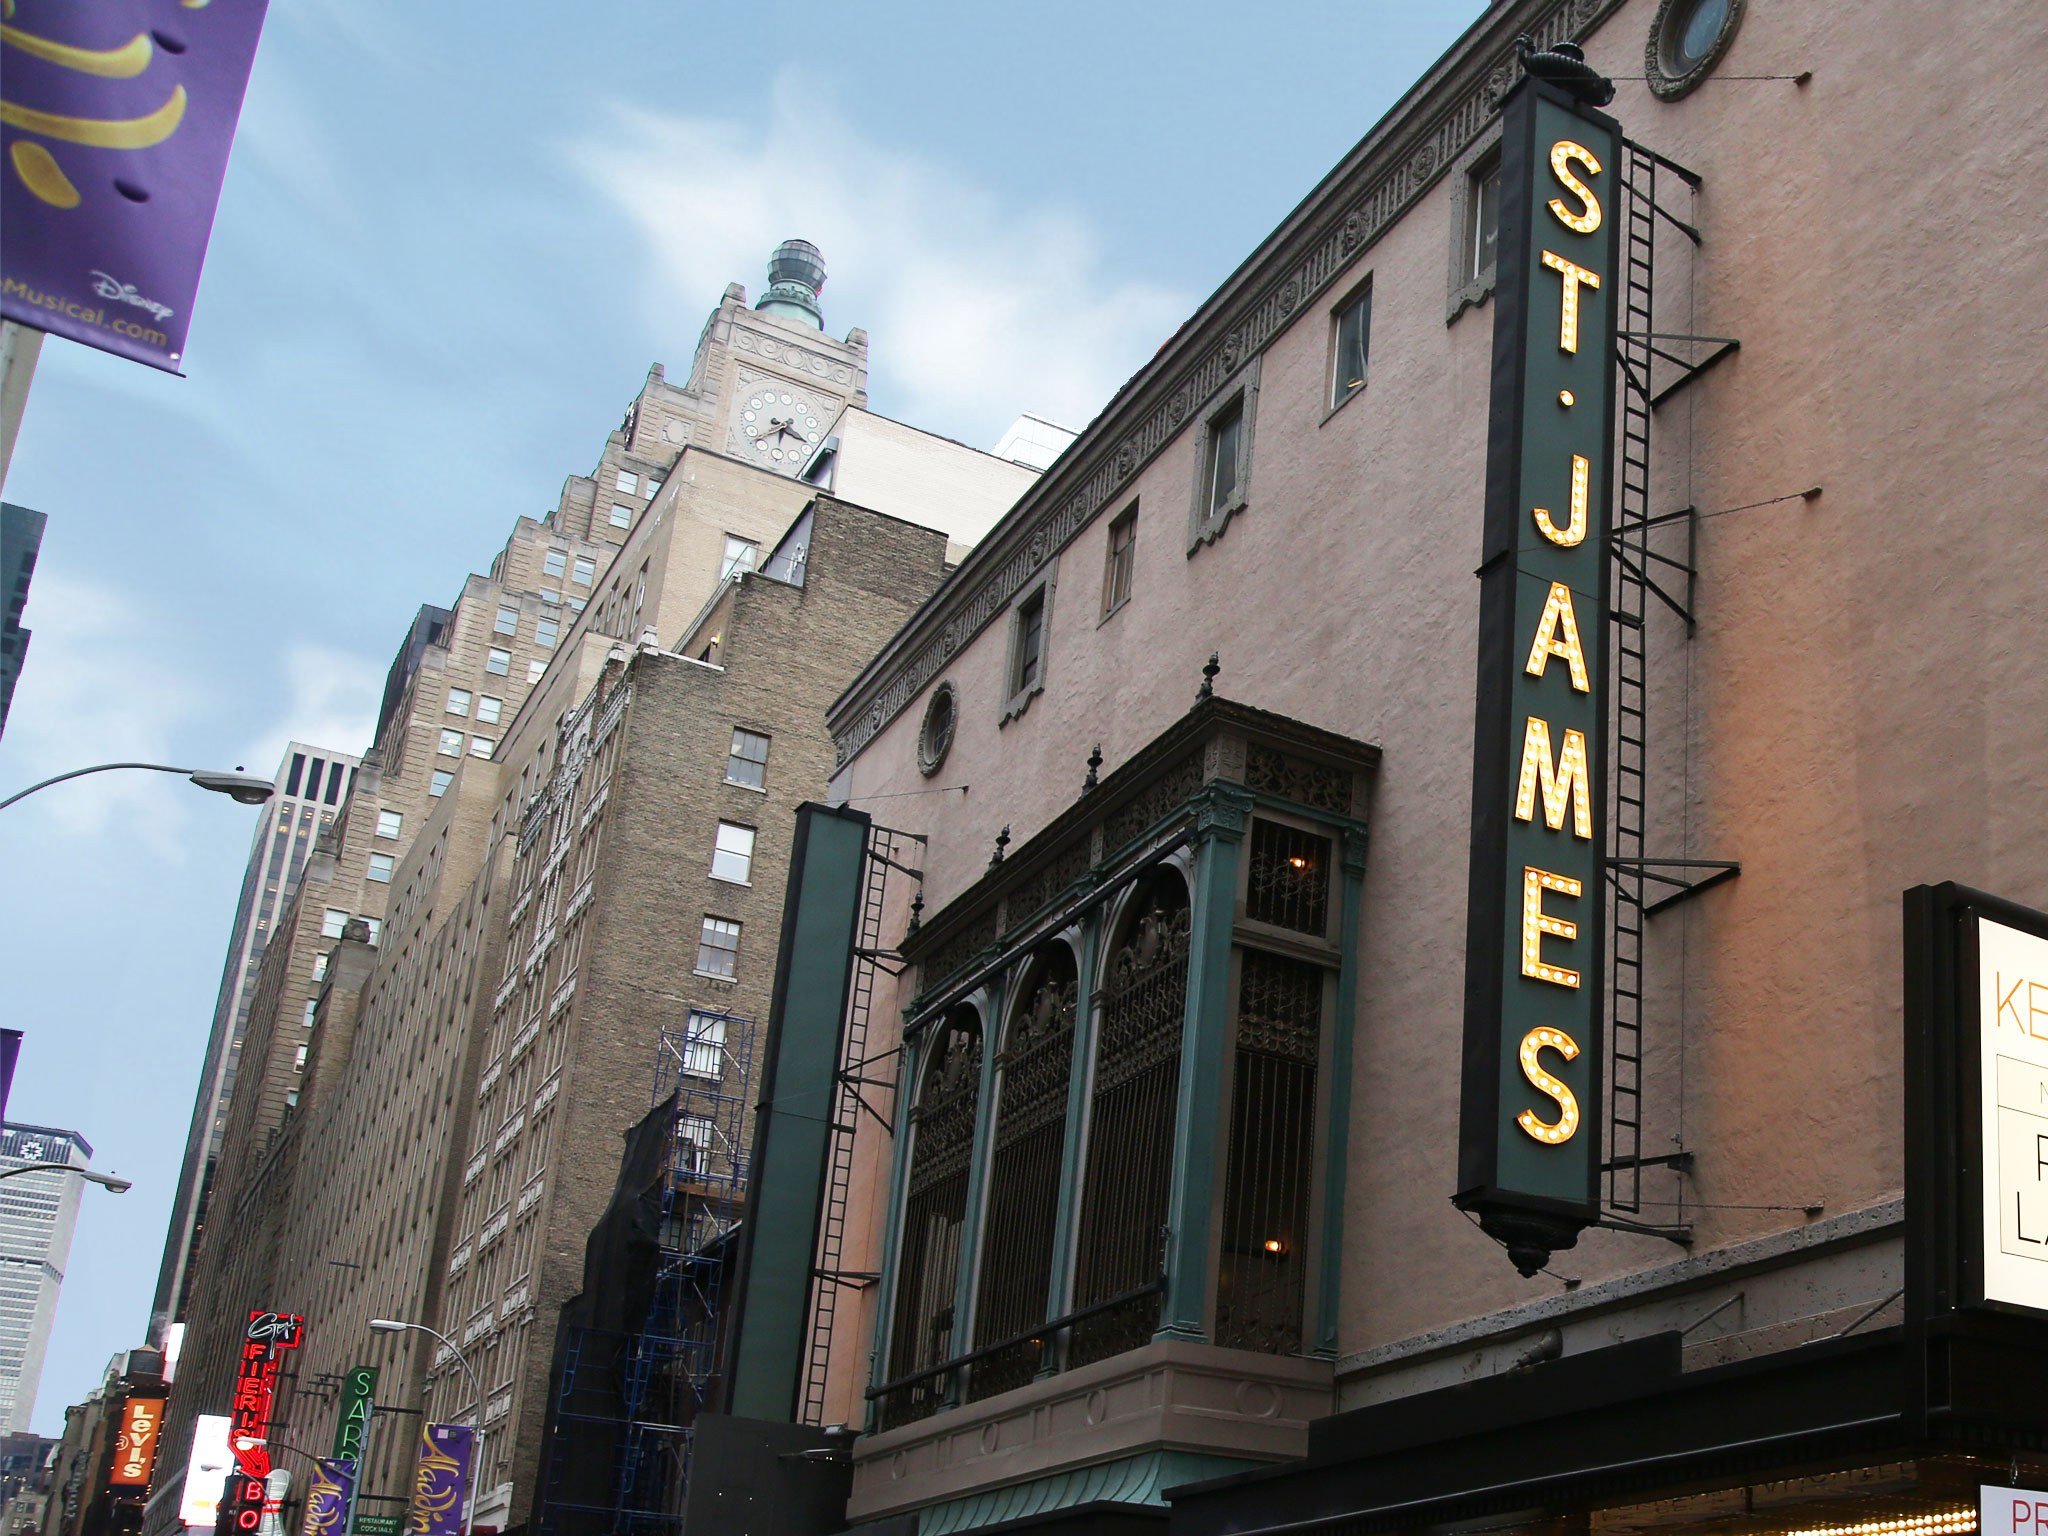 St. James Theatre